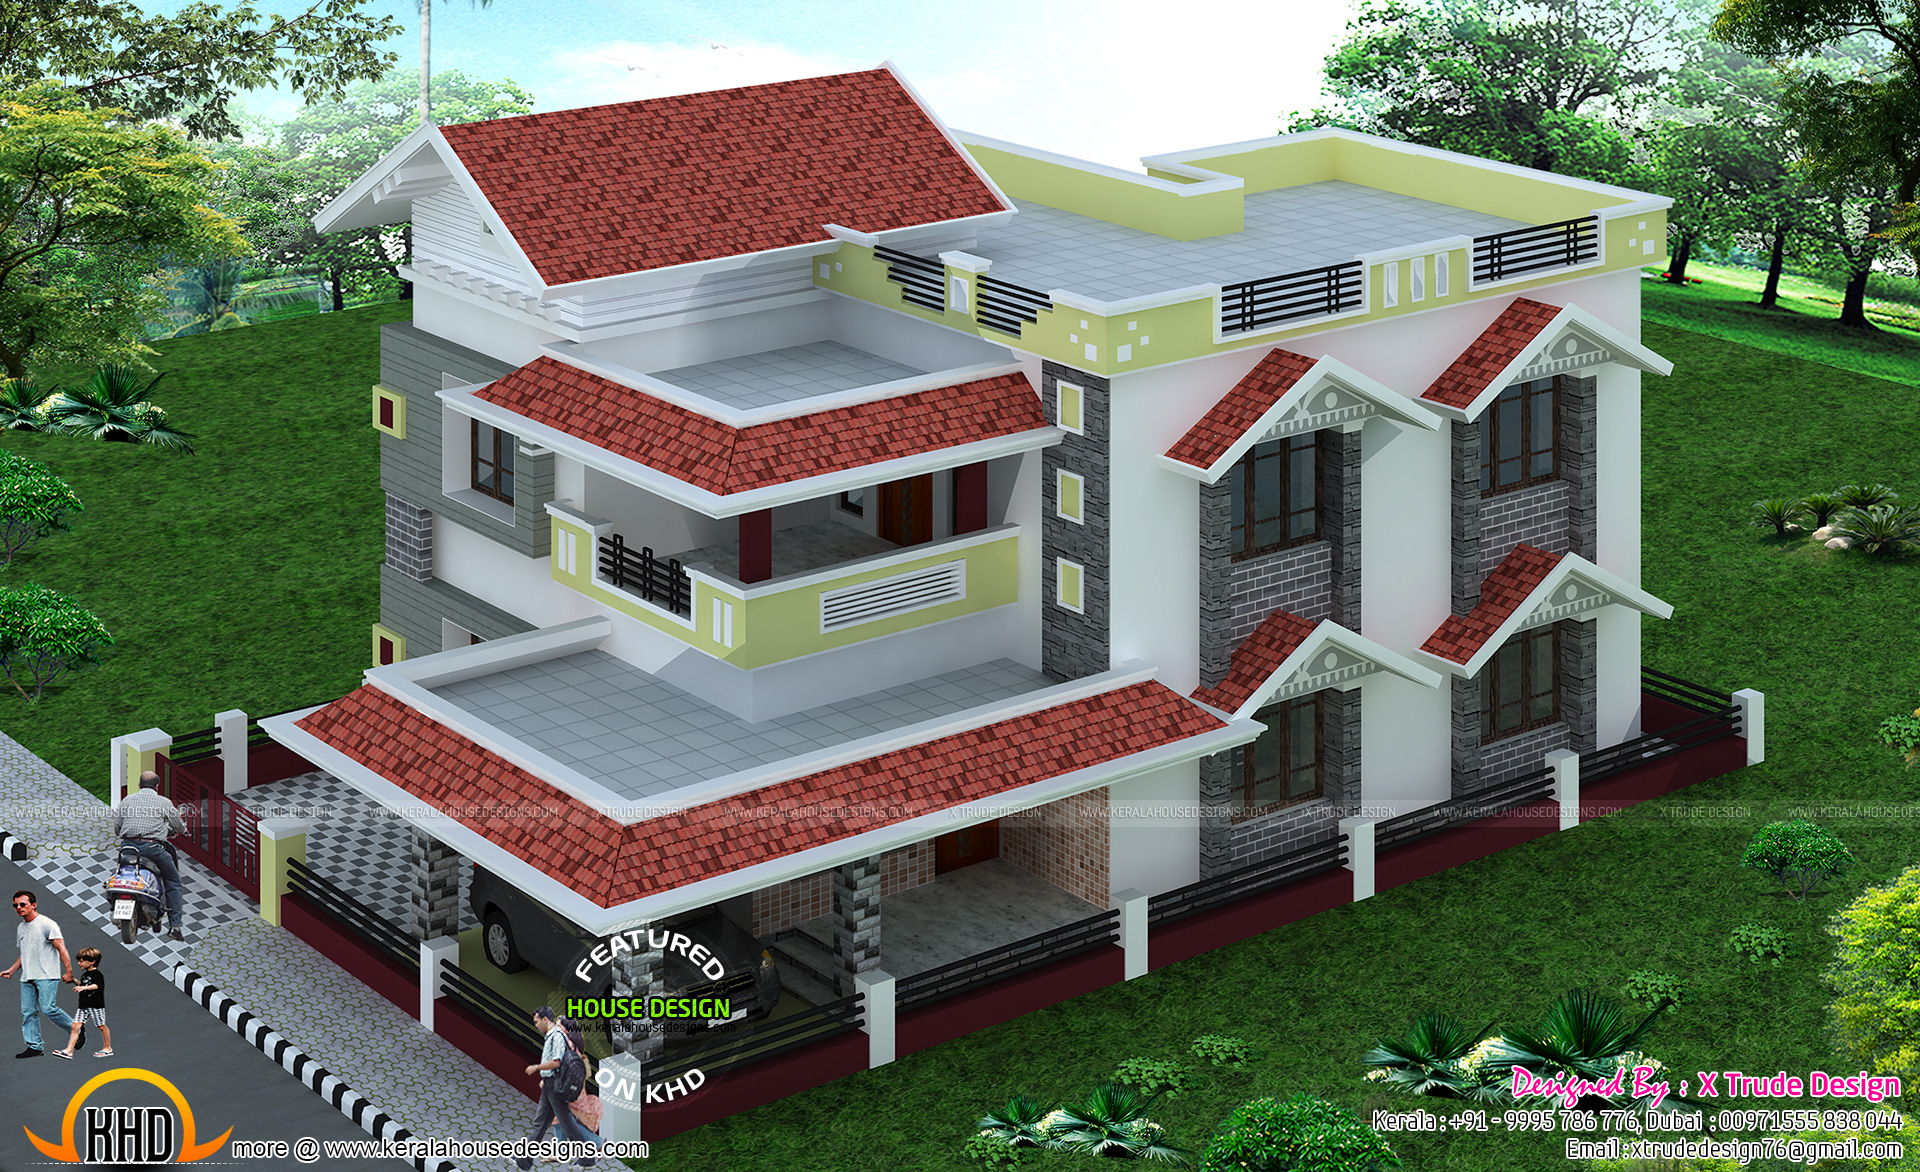 2581 sq ft house by x trude design kerala home design for Home front design model